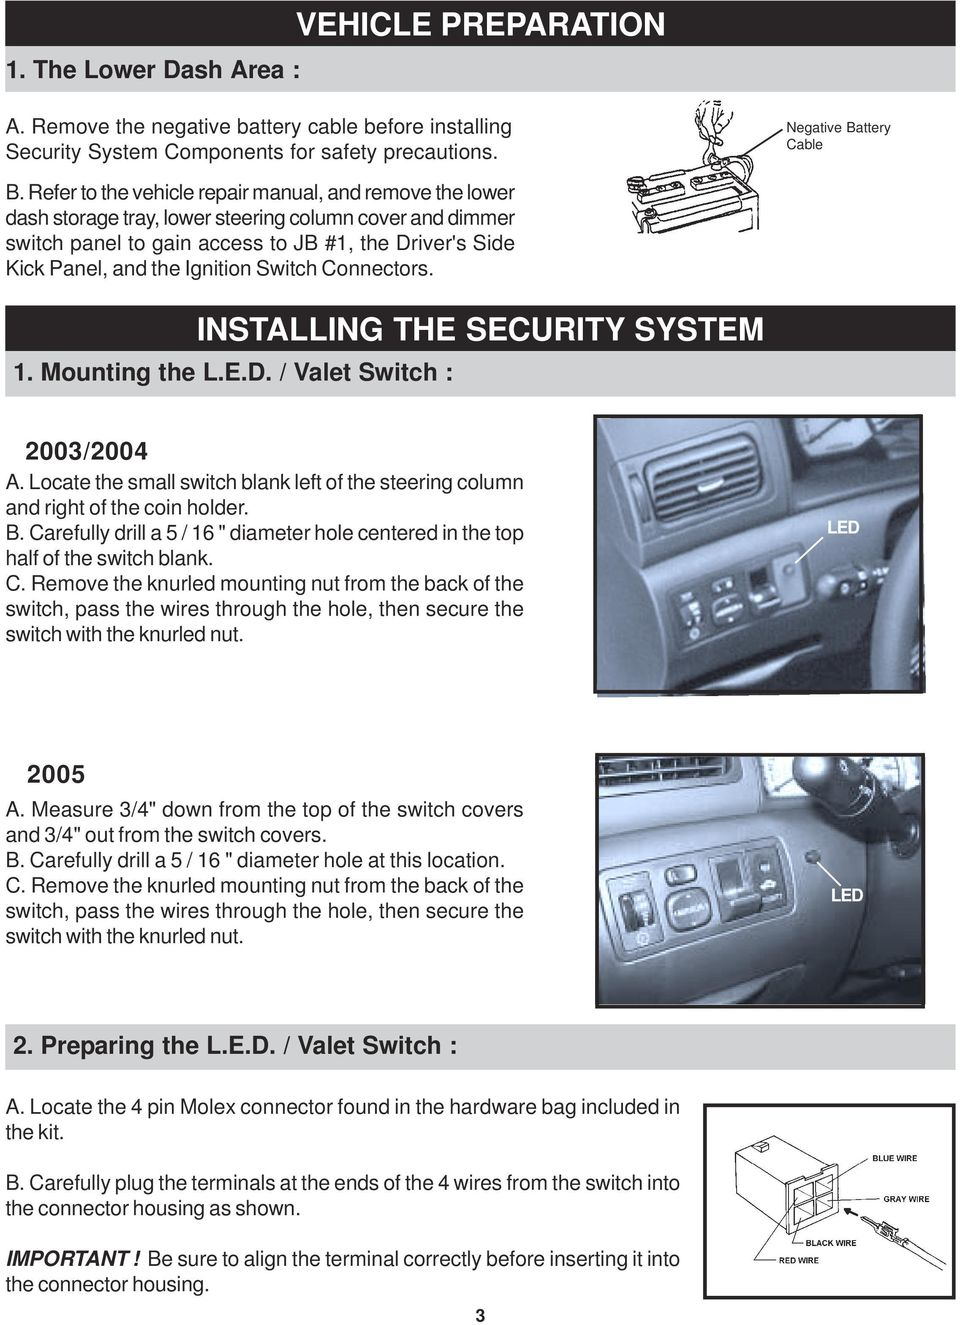 2003 2004 2005 Toyota Corolla Pdf The Form Below To Delete This Thread Install Trailer Wiring Harness Switch Connectors Installing Security System 1 Mounting Led Valet